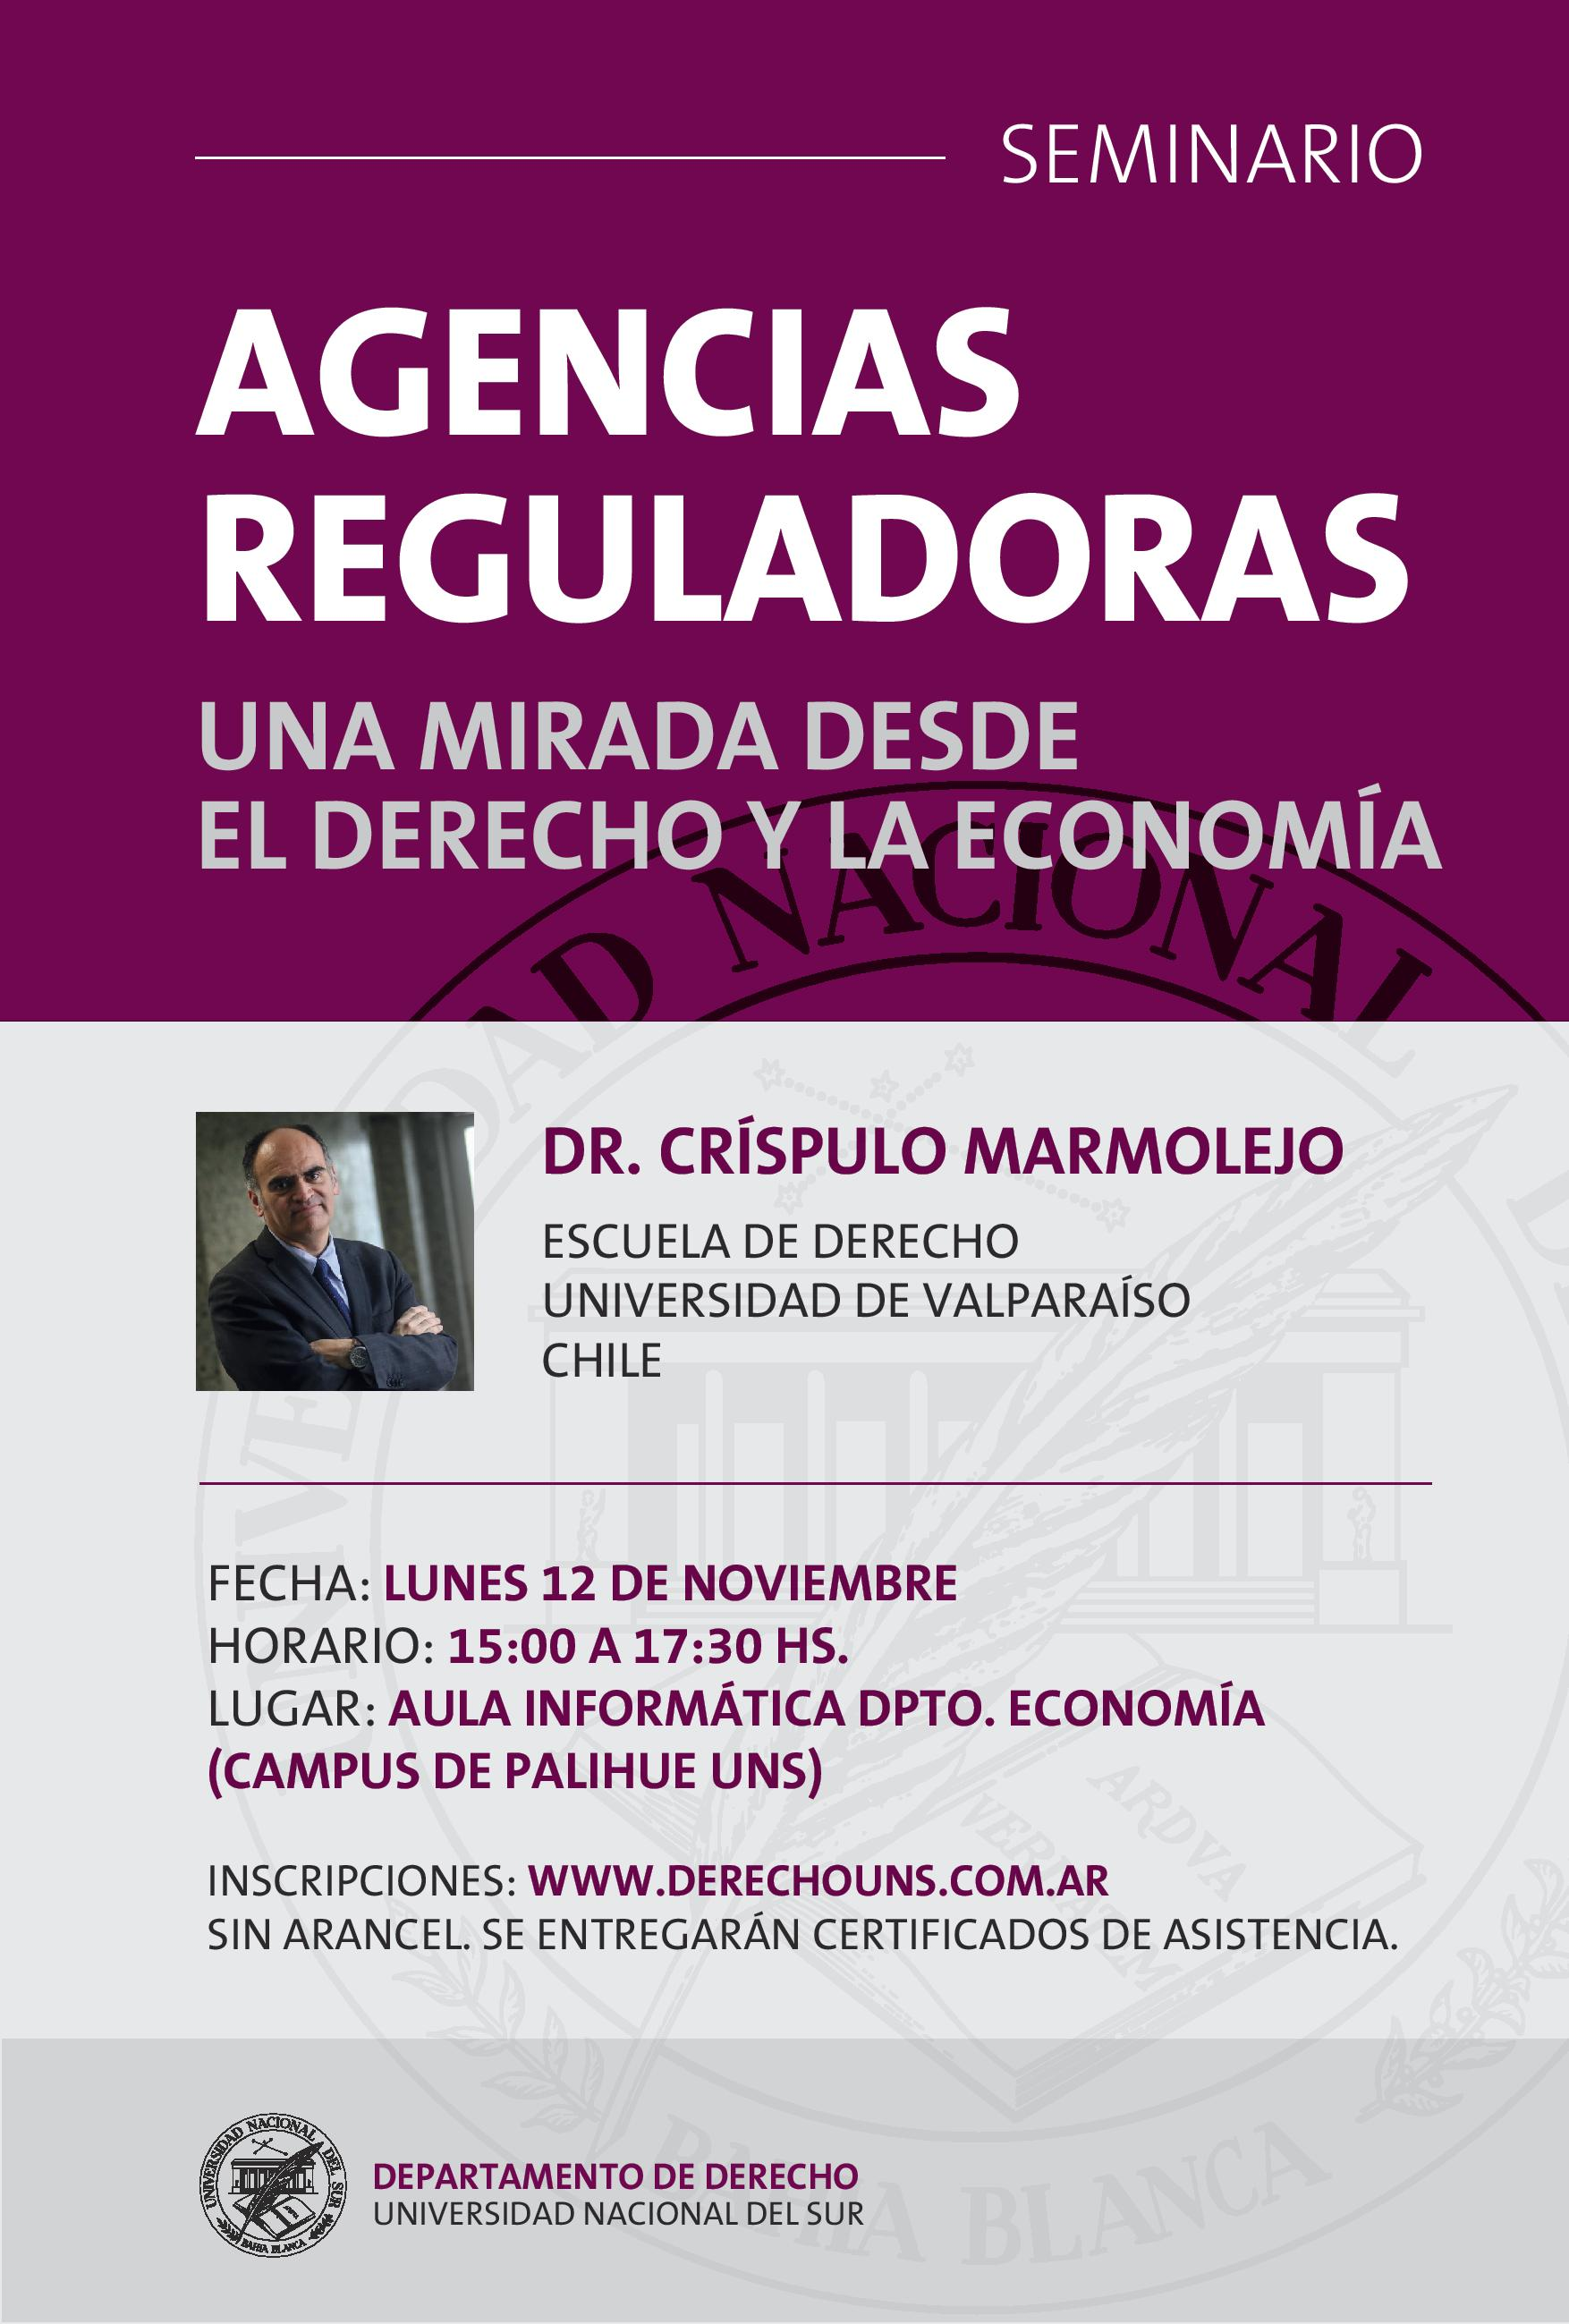 Seminario-Agencias-Reguladoras